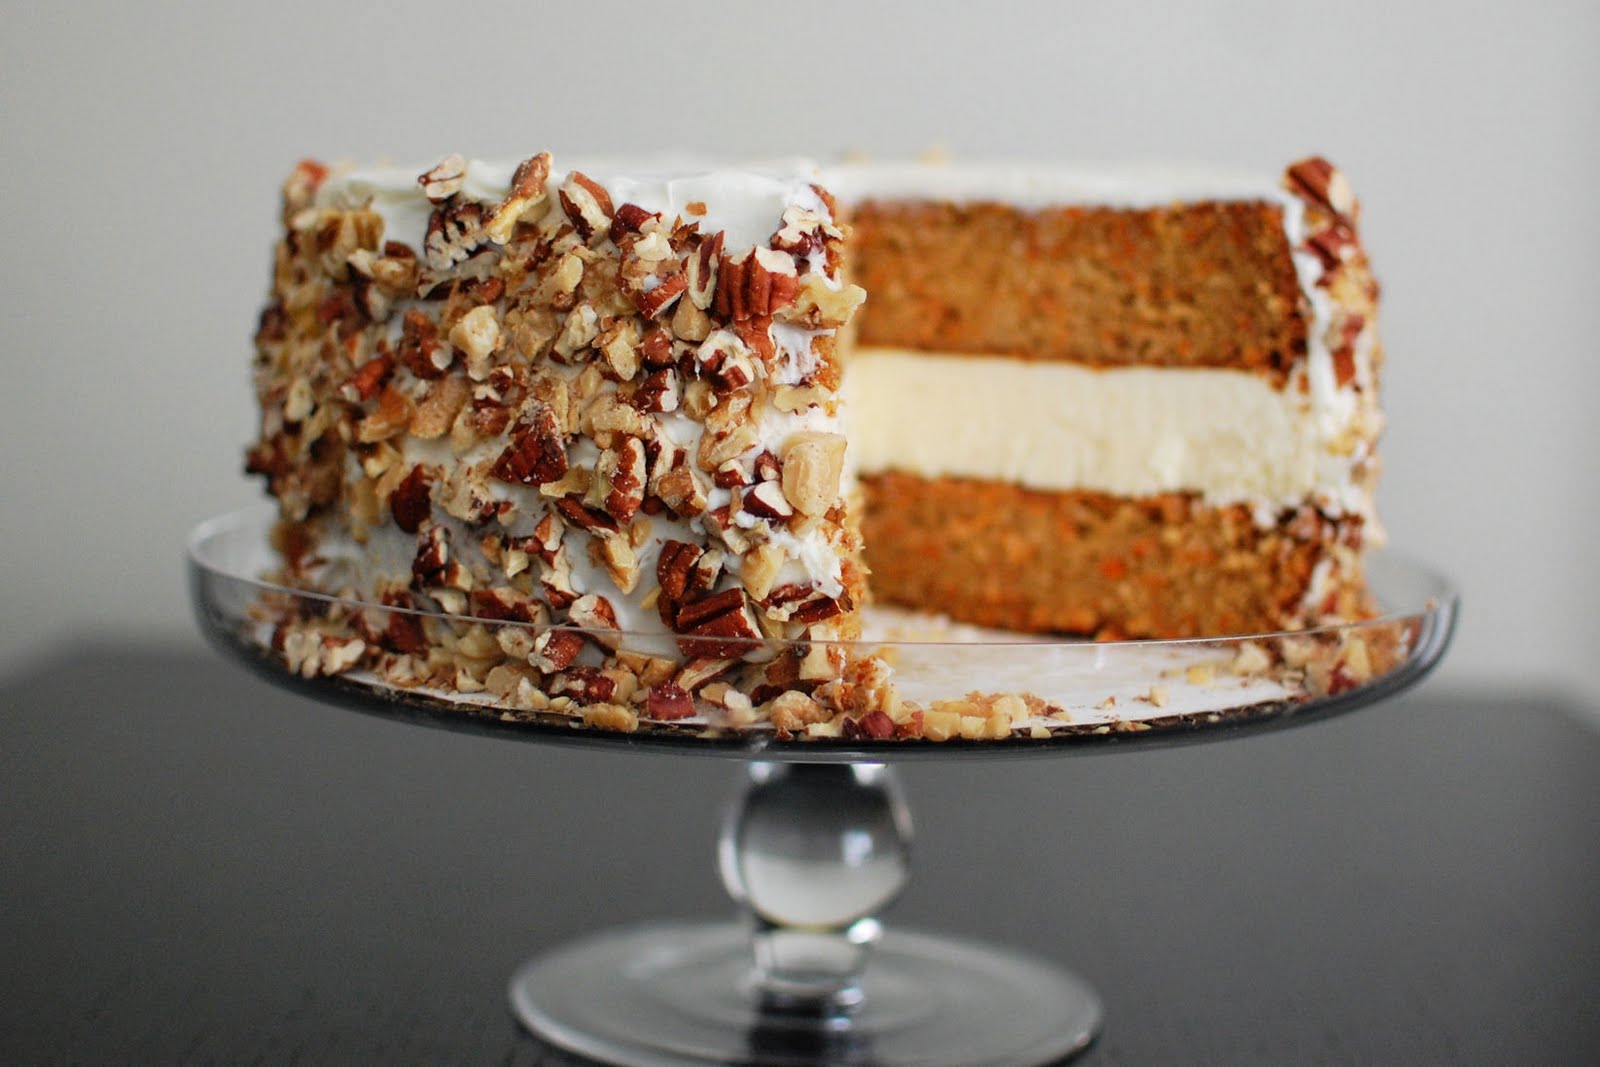 Since Easter Is Coming Up I Ve Been Seeing Carrot Cake Recipes All Over The Place And We All Know That Carrot Cake Goes So Well With Cream Cheese Frosting